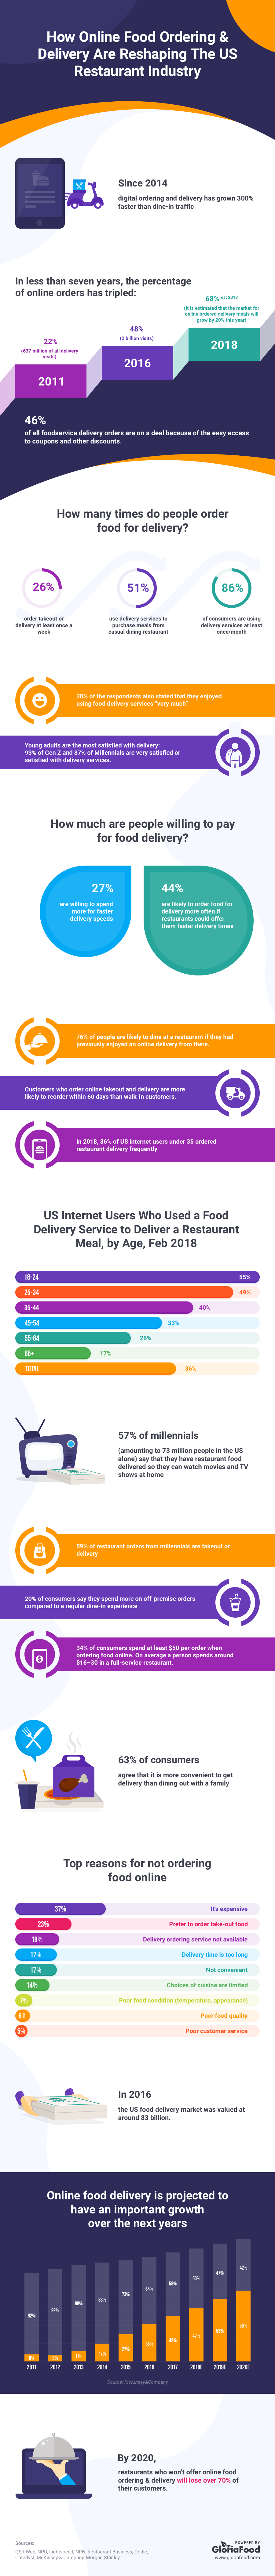 restaurant delivery statistics: discover how many order people order home delivery food online